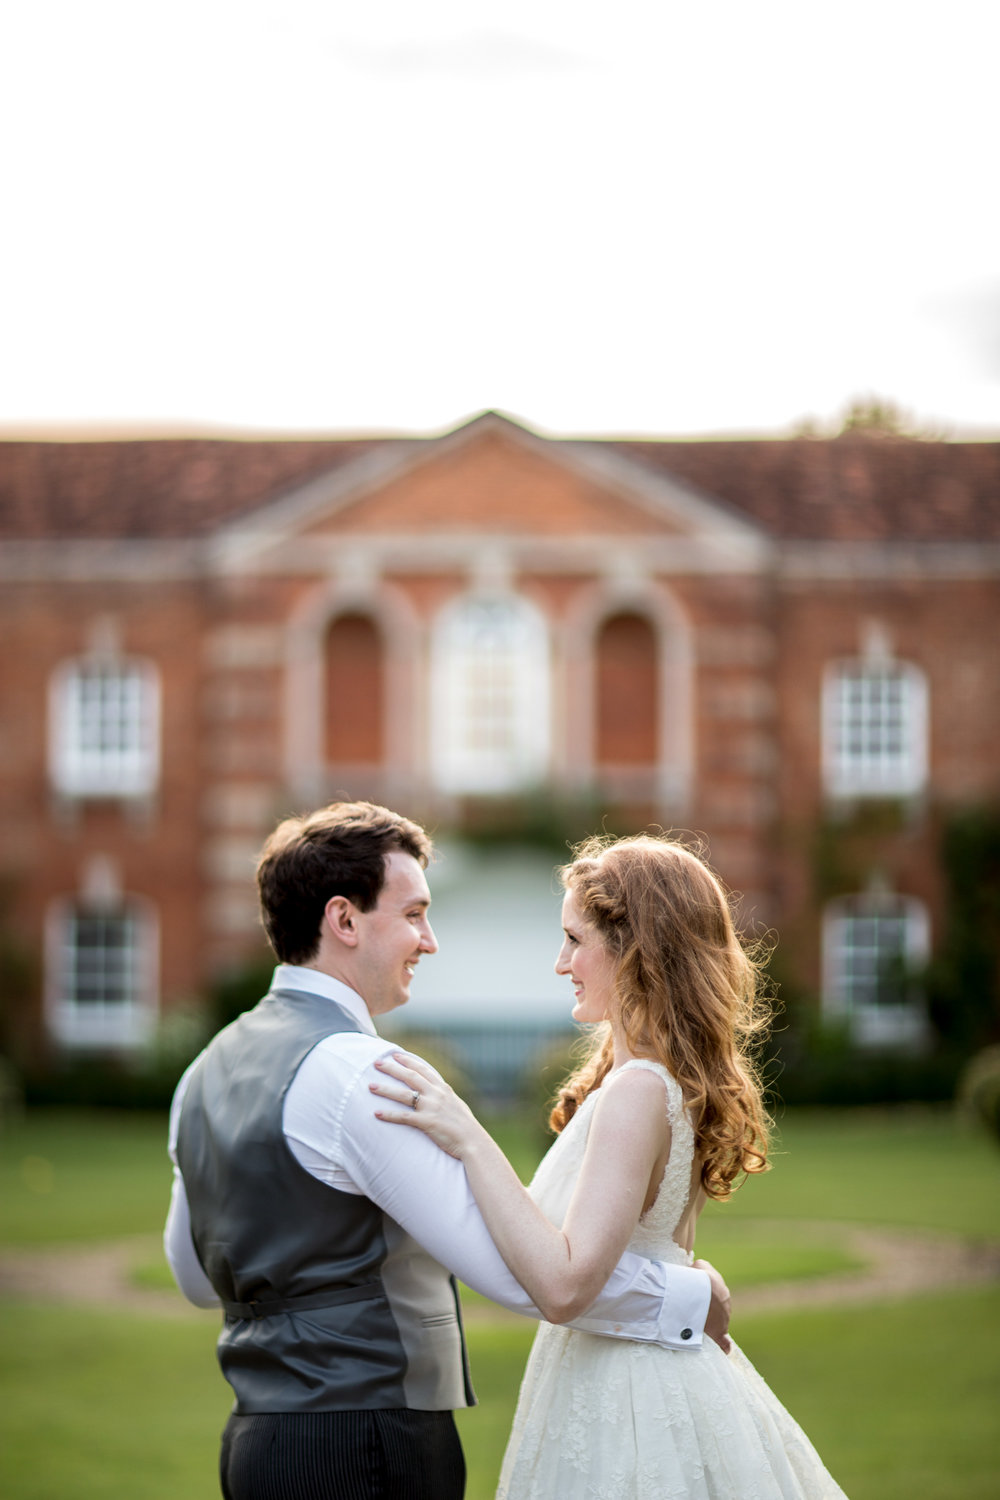 Couple, dancing, summer wedding, evening, Chicheley Hall, Buckinghamshire Wedding,